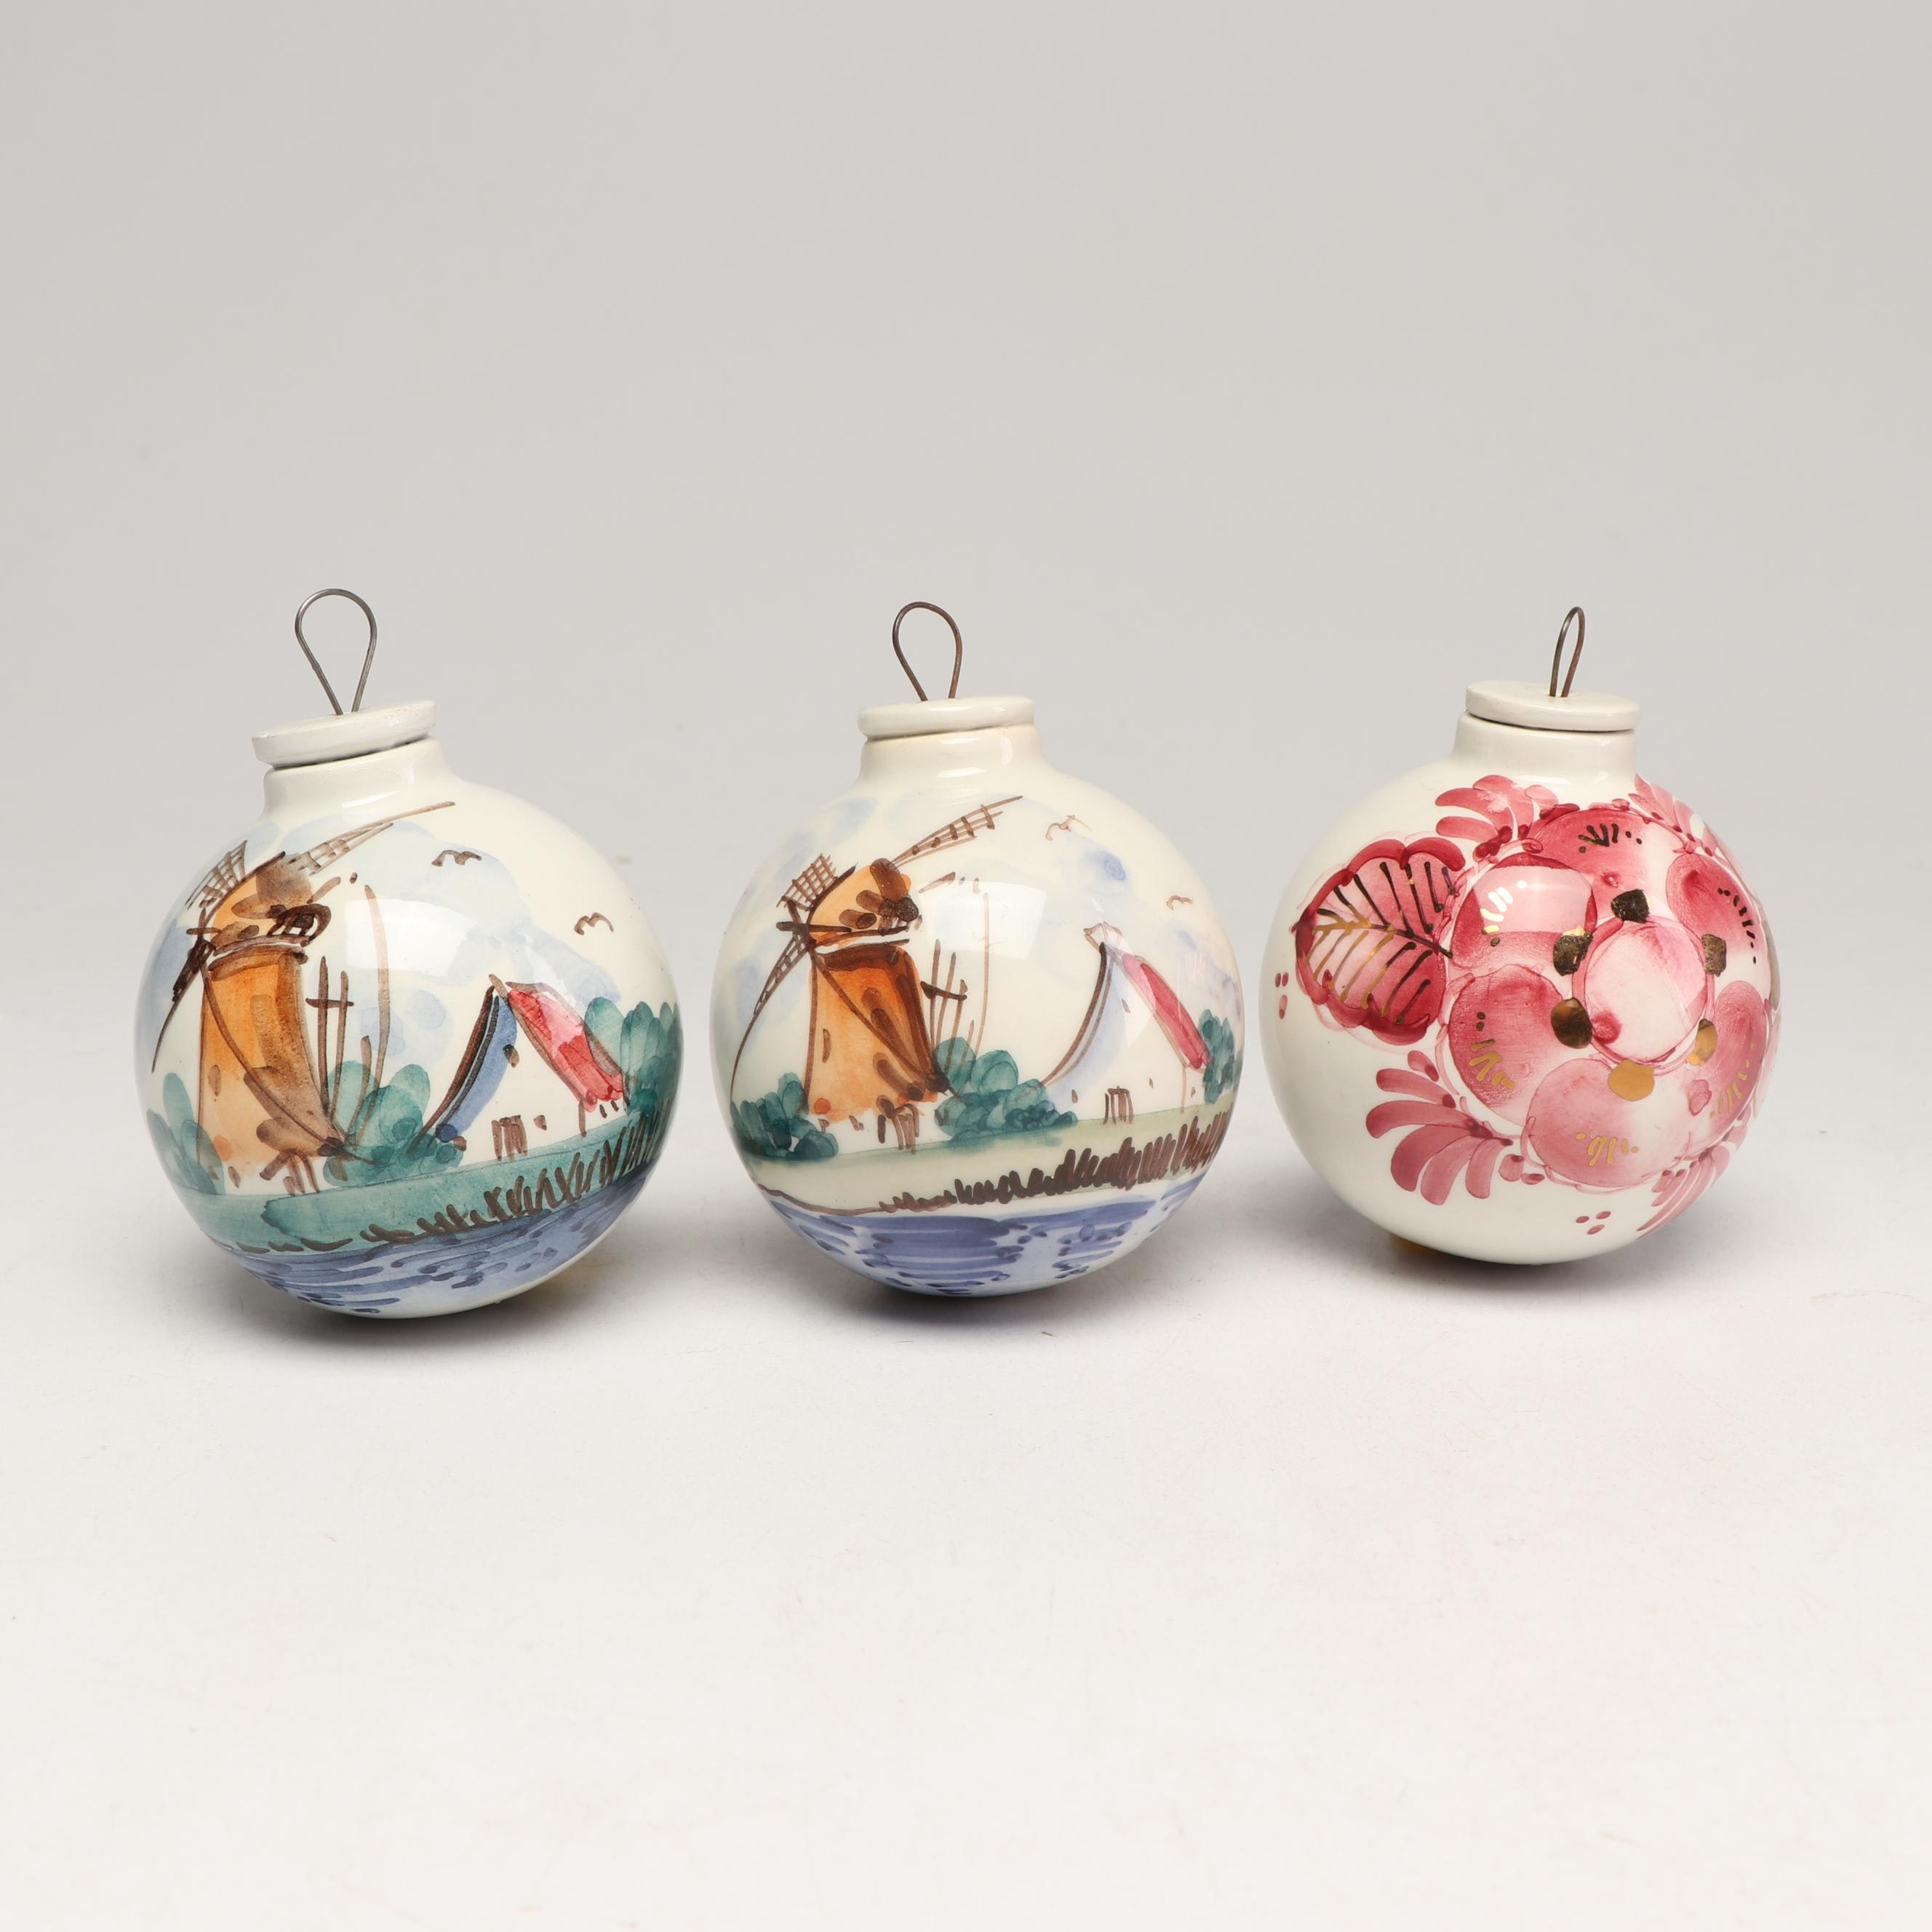 Delft Pottery Hand Painted Christmas Ornaments